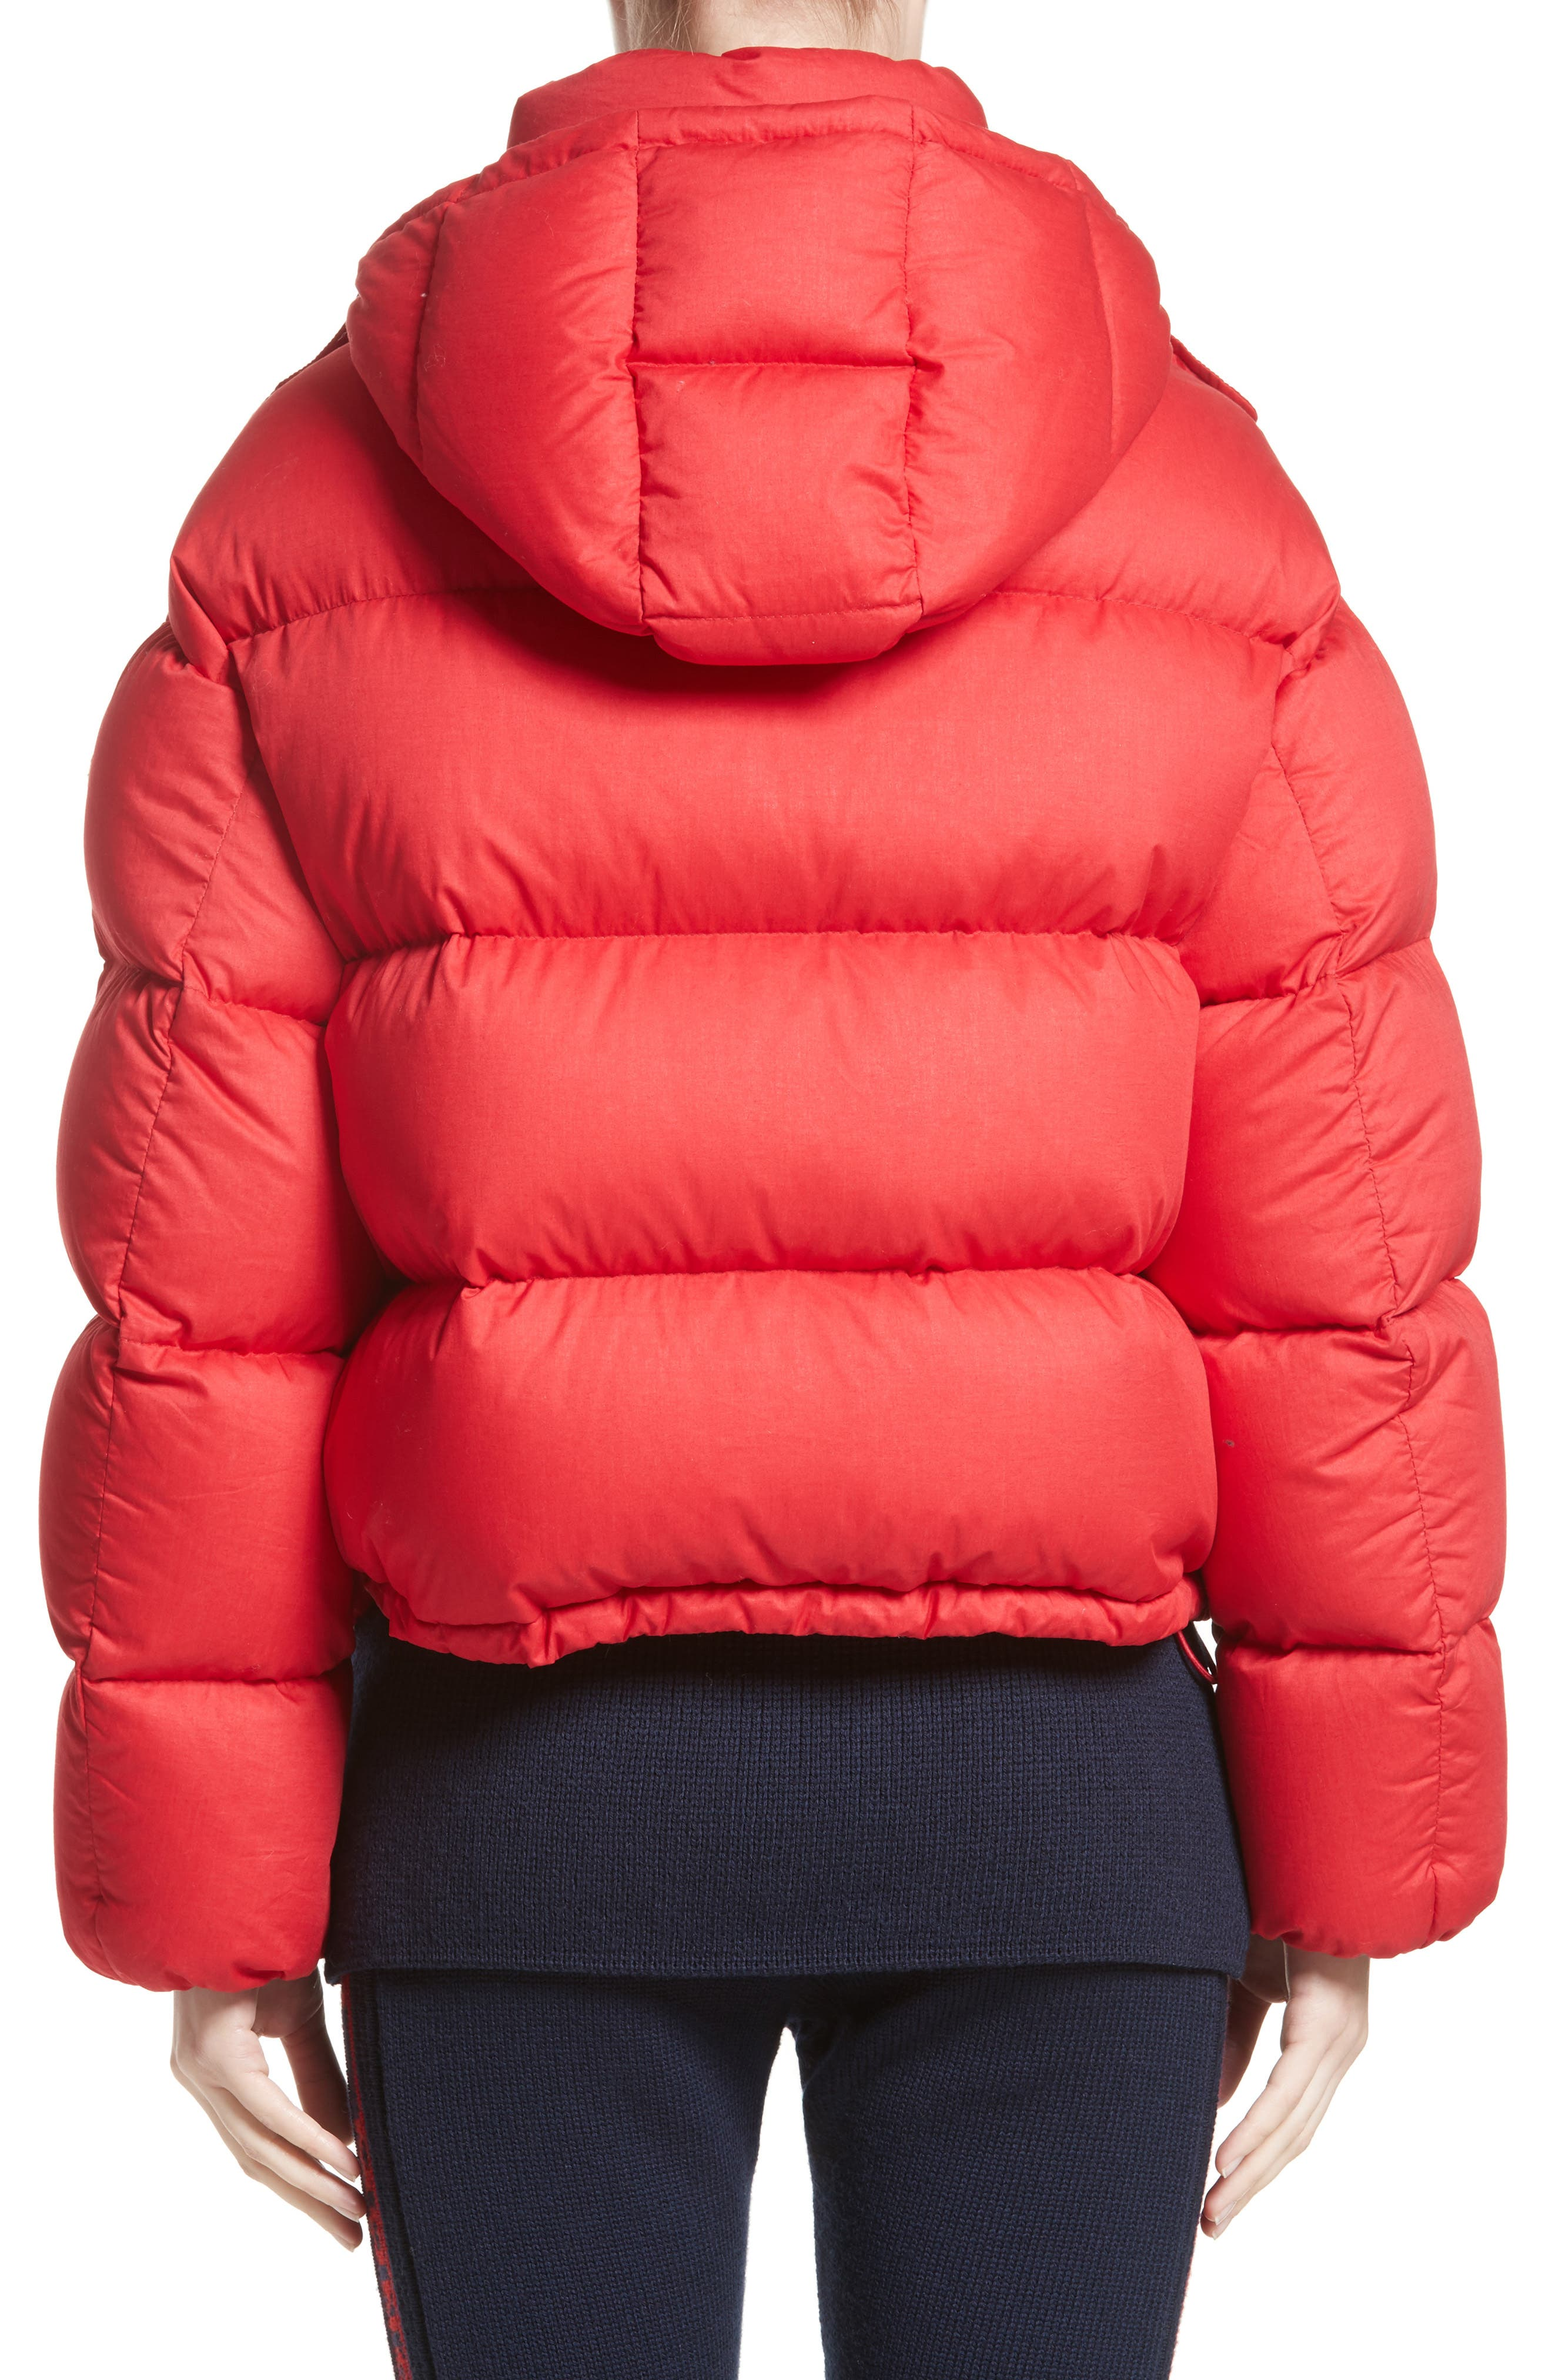 Paeonia Quilted Puffer Jacket,                             Alternate thumbnail 2, color,                             Red